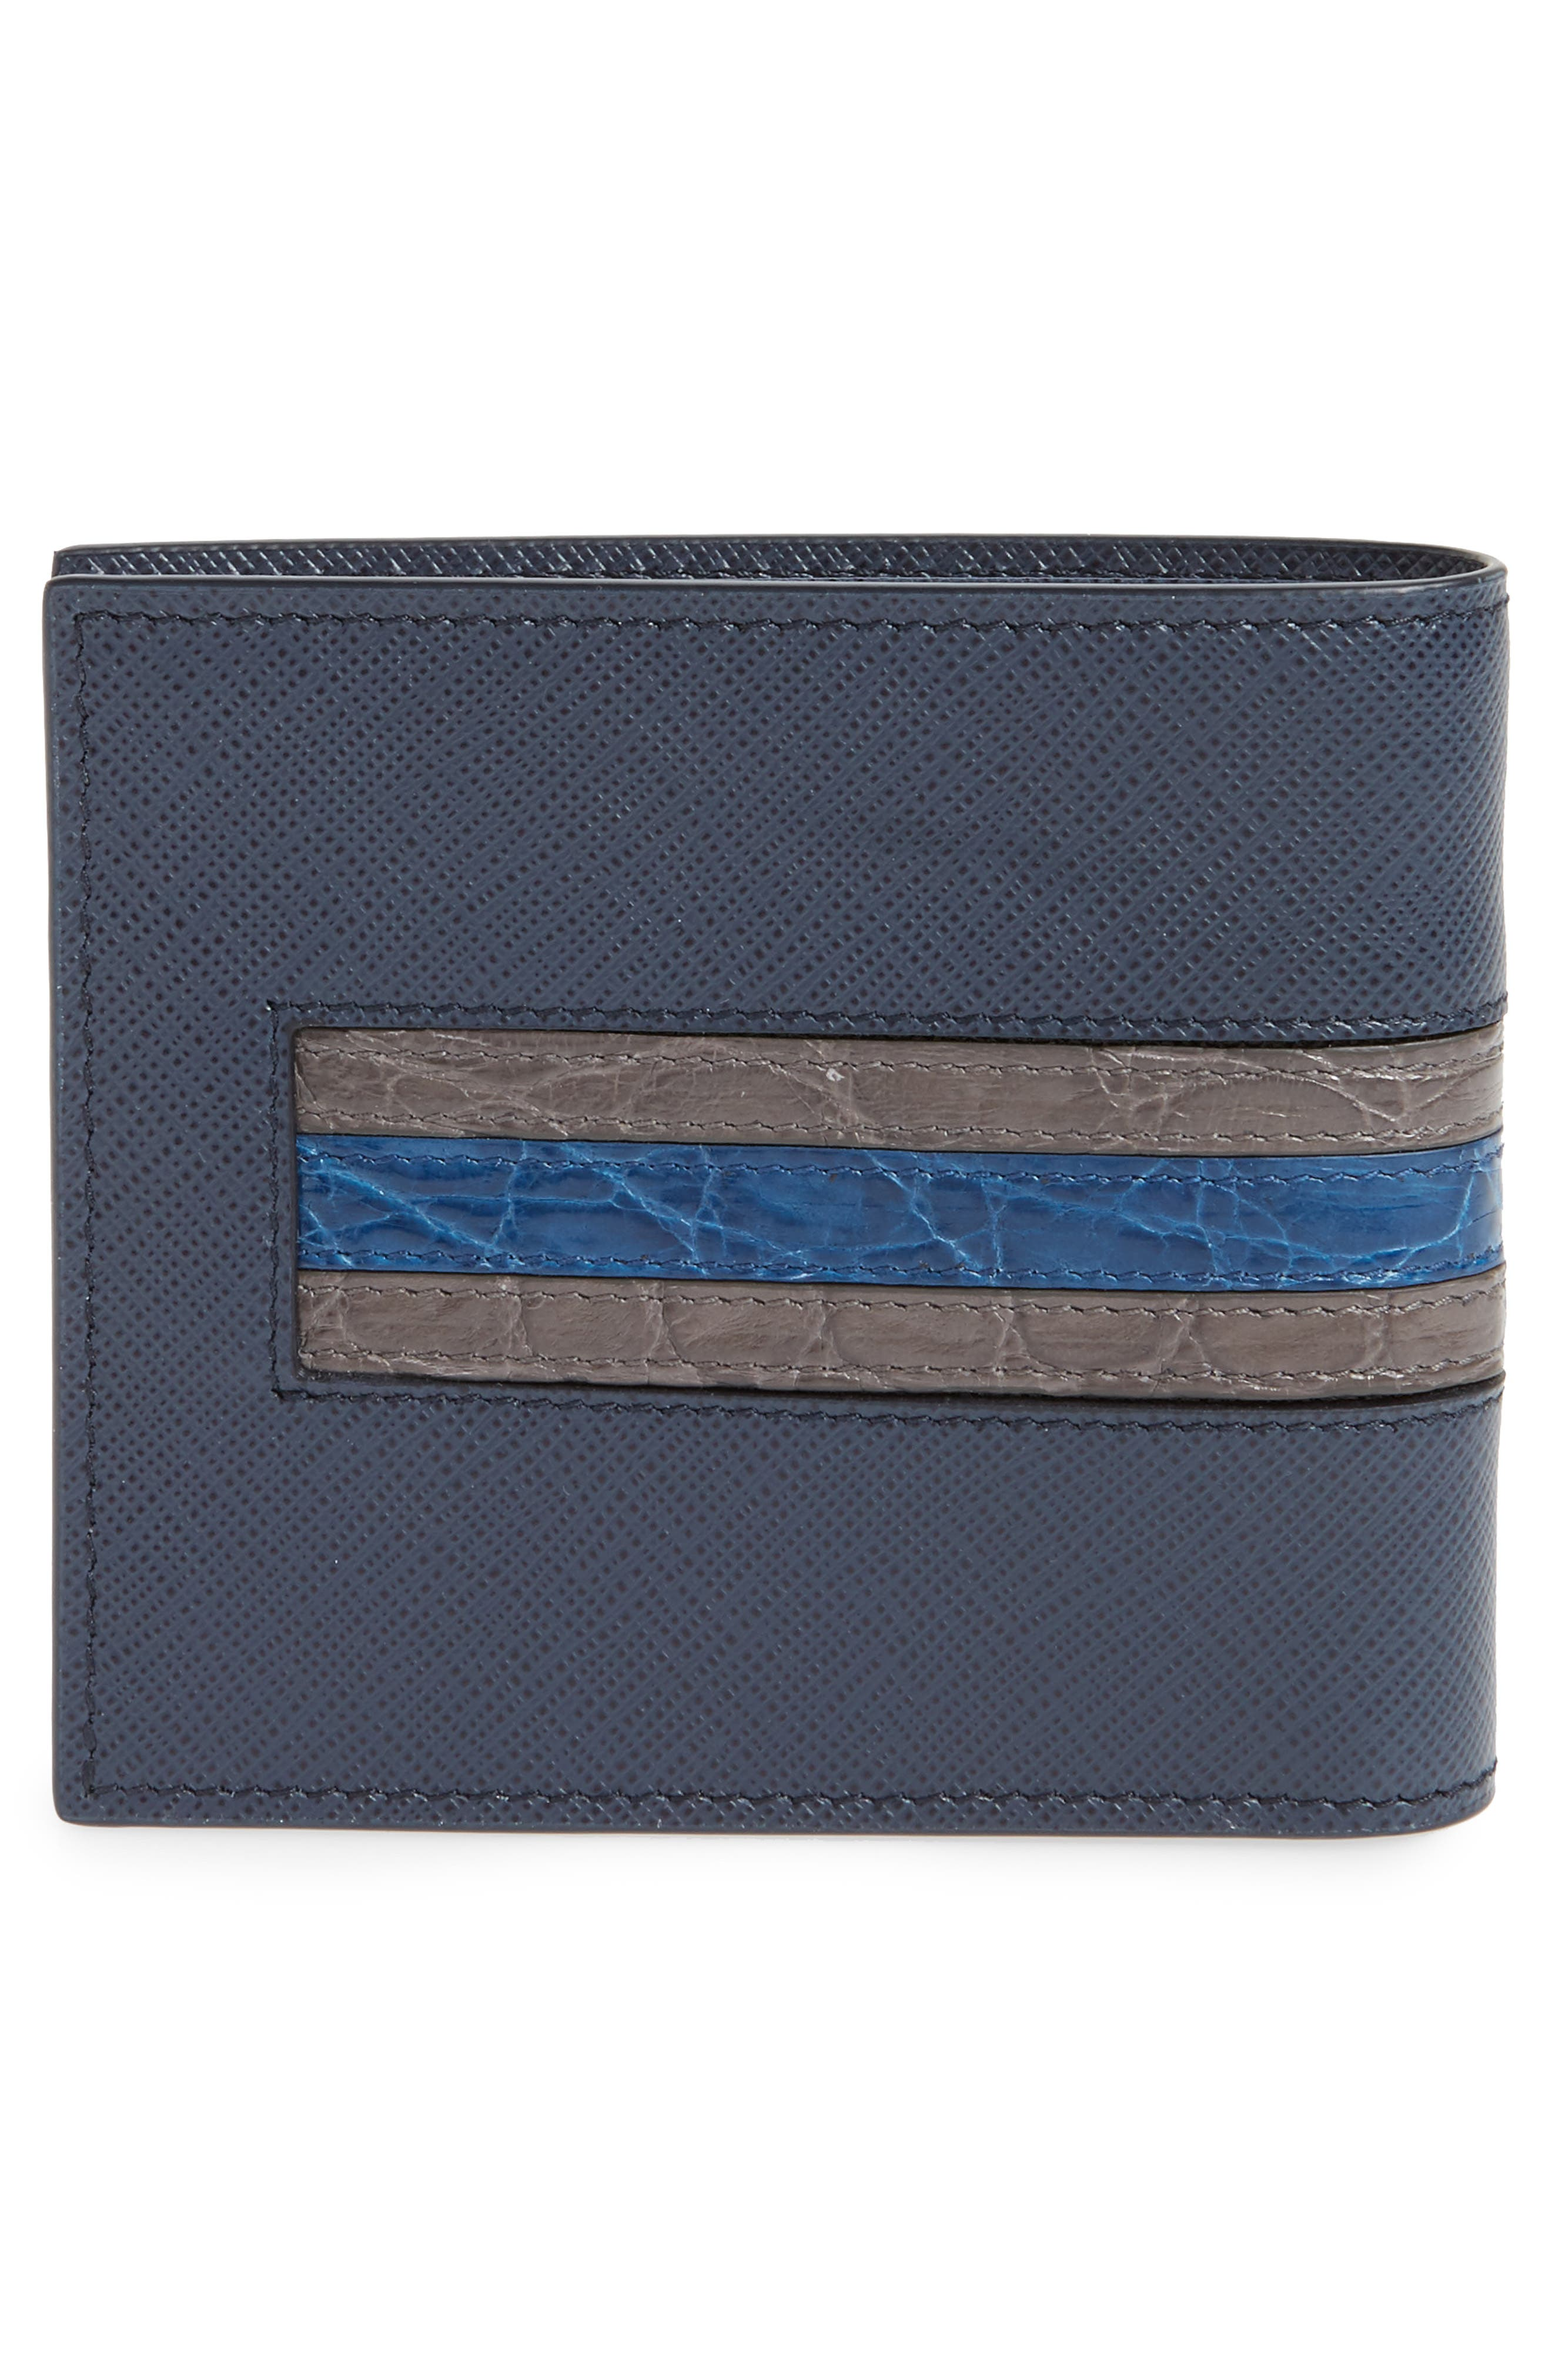 Saffiano and Crocodile Leather Wallet,                             Alternate thumbnail 6, color,